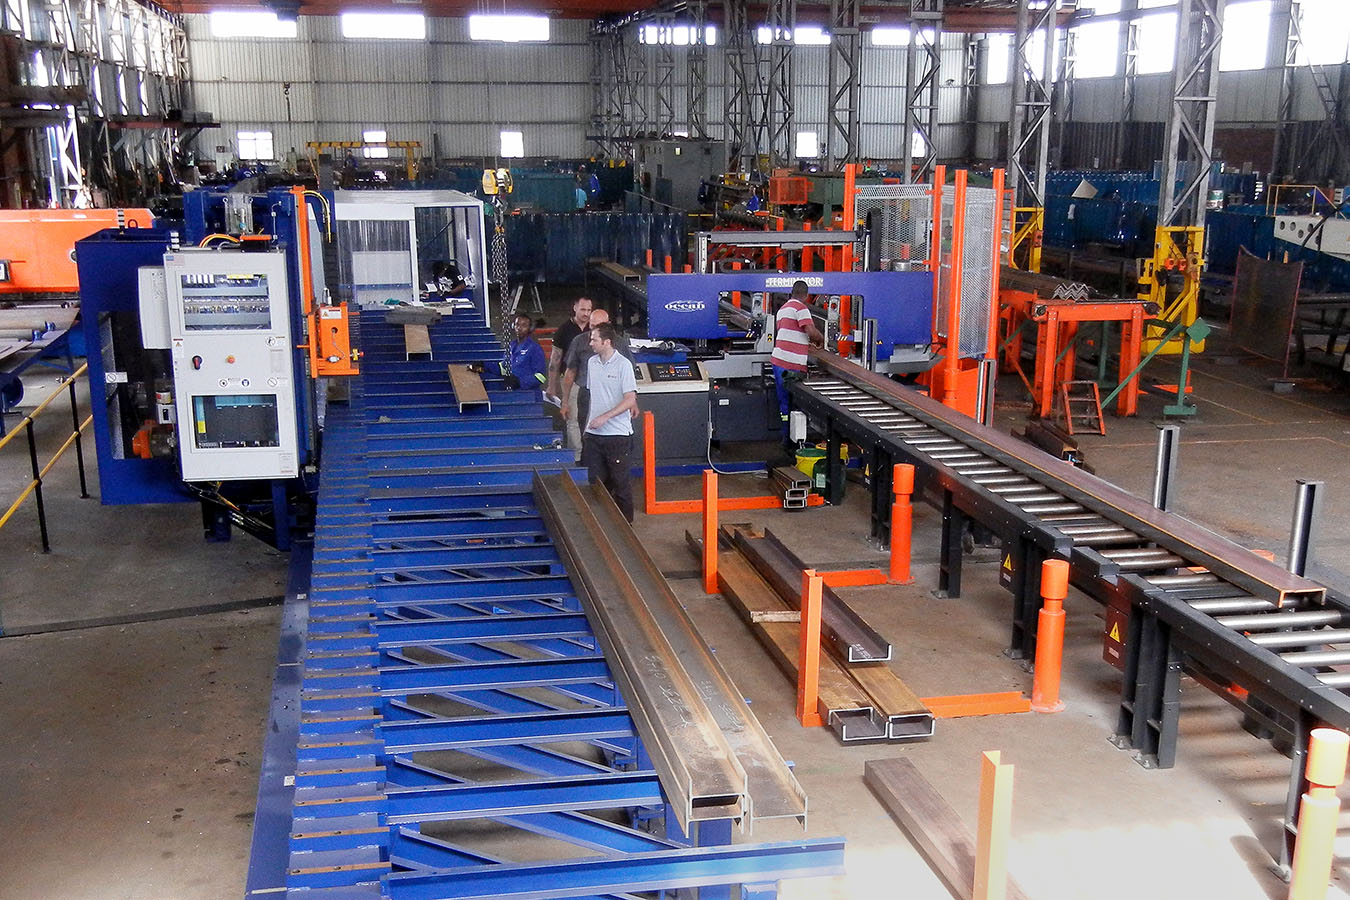 AvengerPLUS CNC Drill Line installed with Terminator DCM-18/25 Band Saw